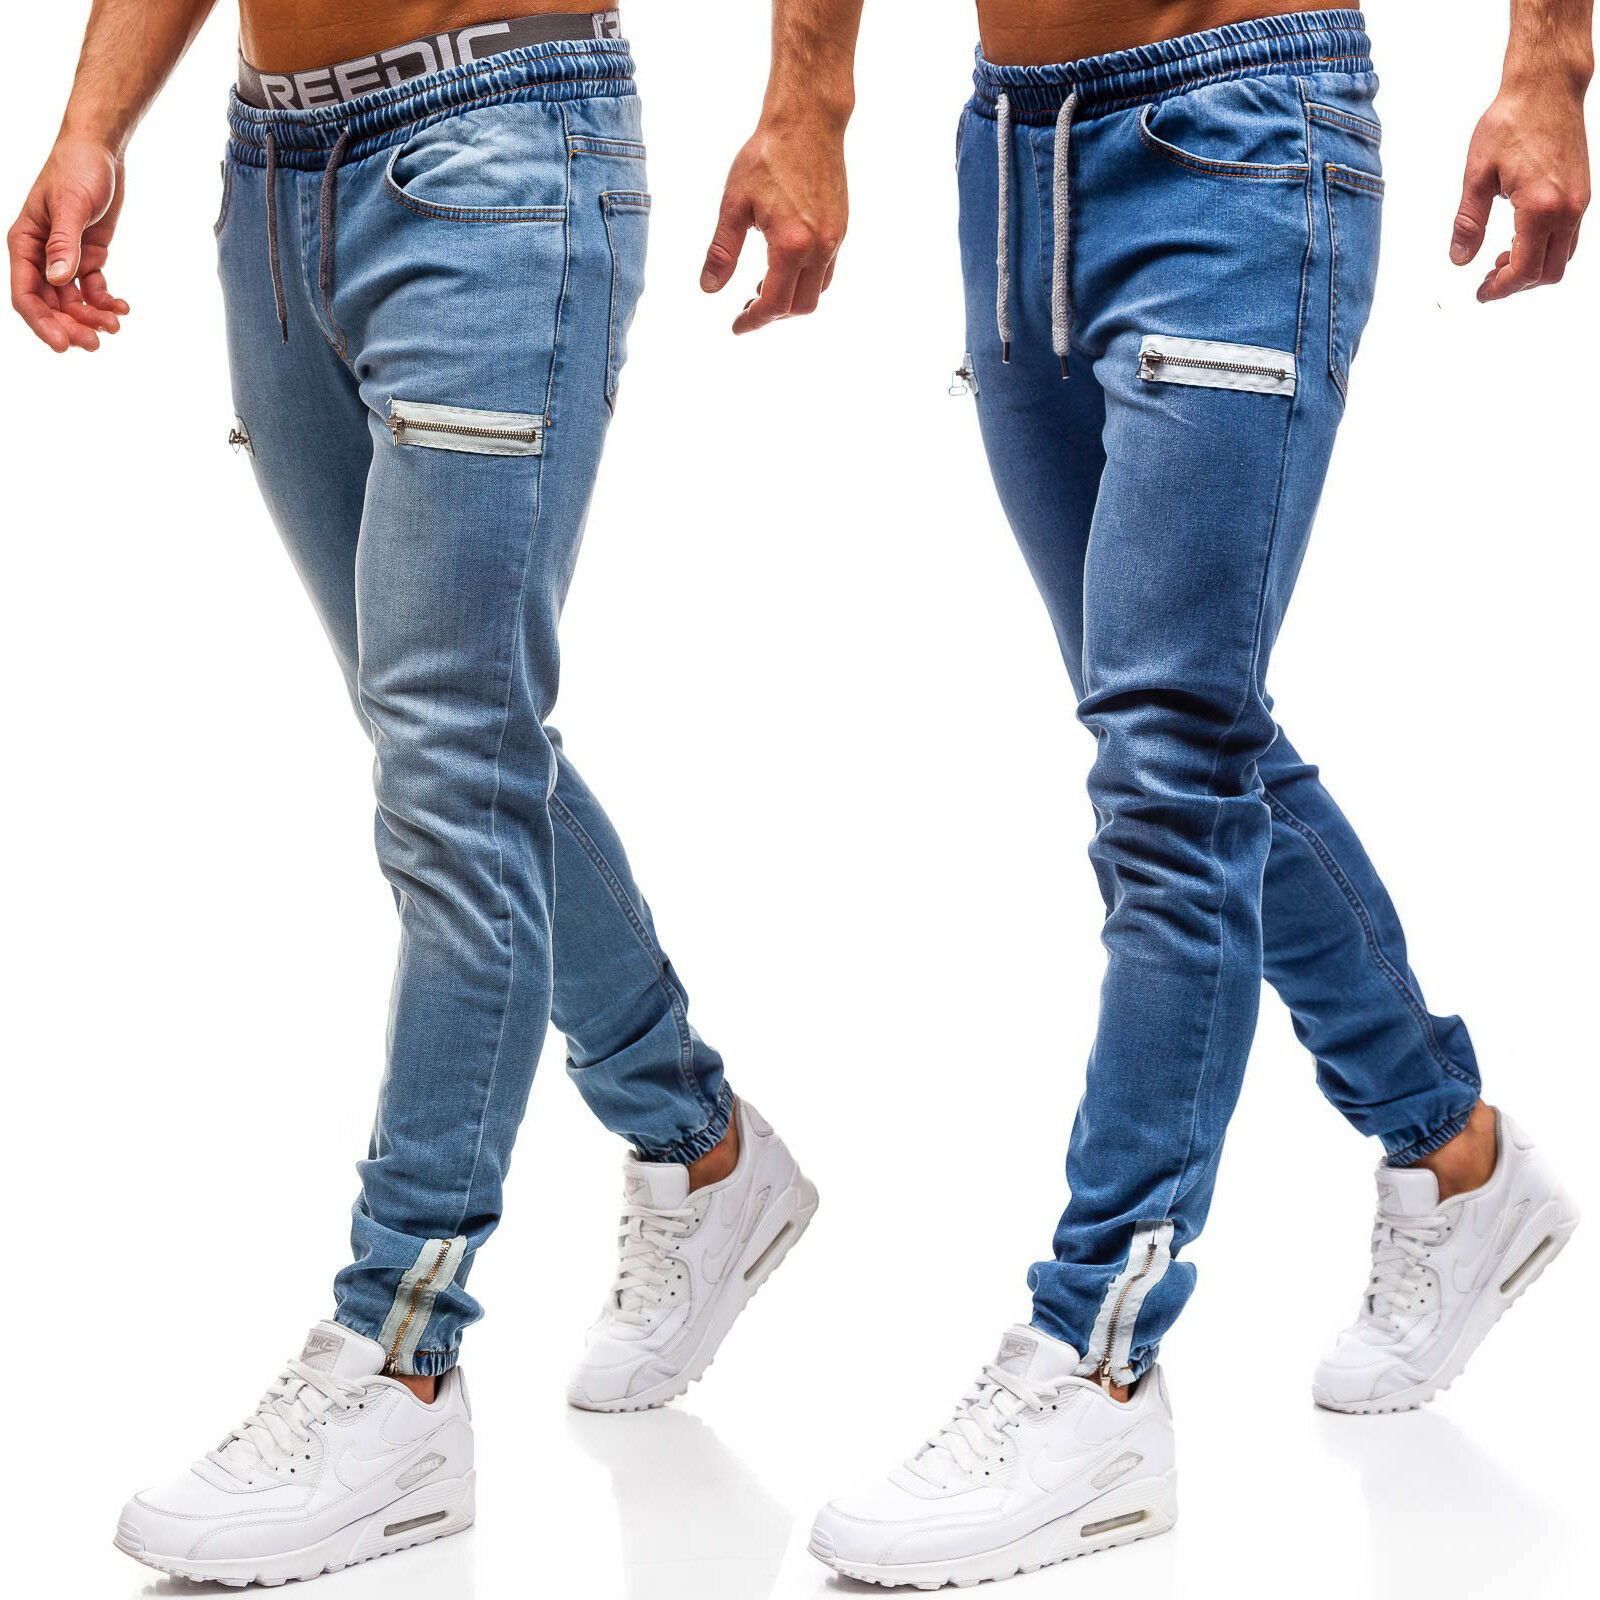 3 Styles Men Stretchy Ripped Skinny Biker Jeans BIack Zip Pocket Taped Slim Fit Denim Scratched High Quality Jean